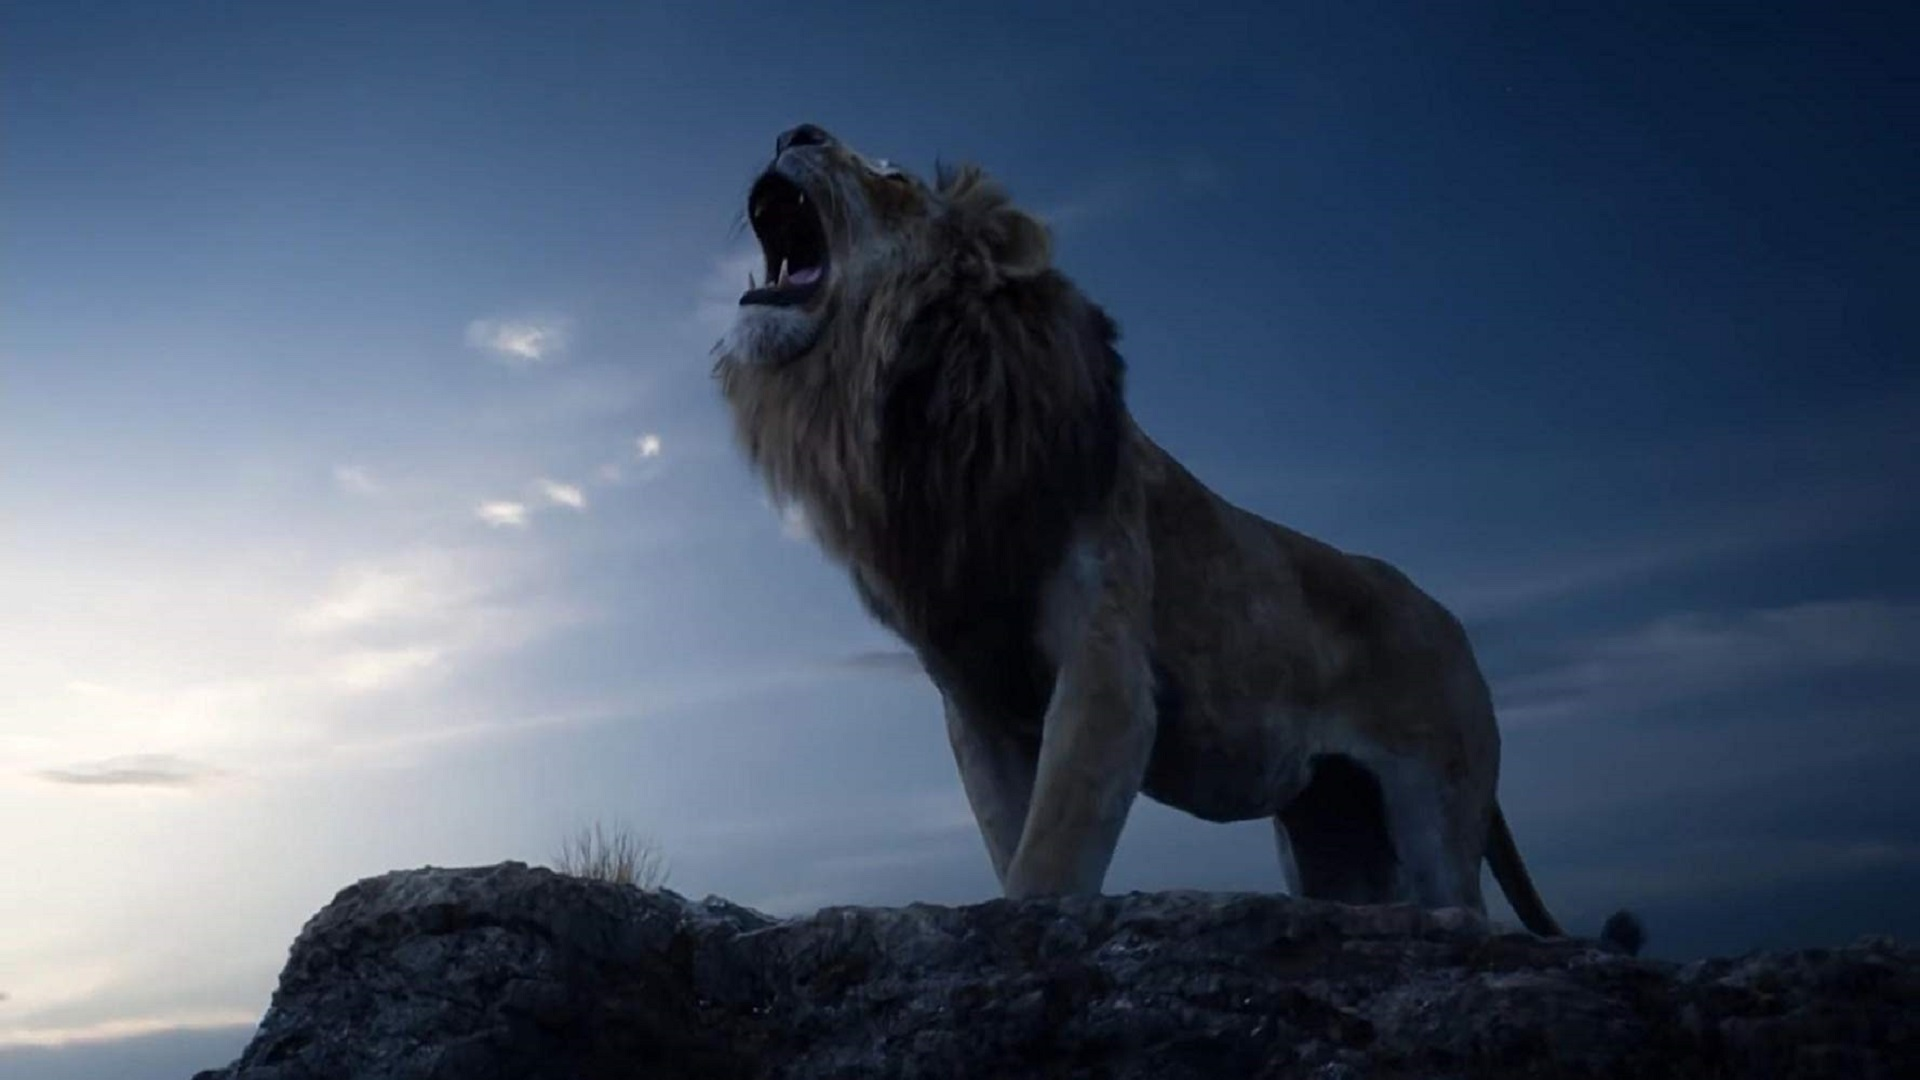 The Lion King 2019 Wallpapers High Quality | Download Free